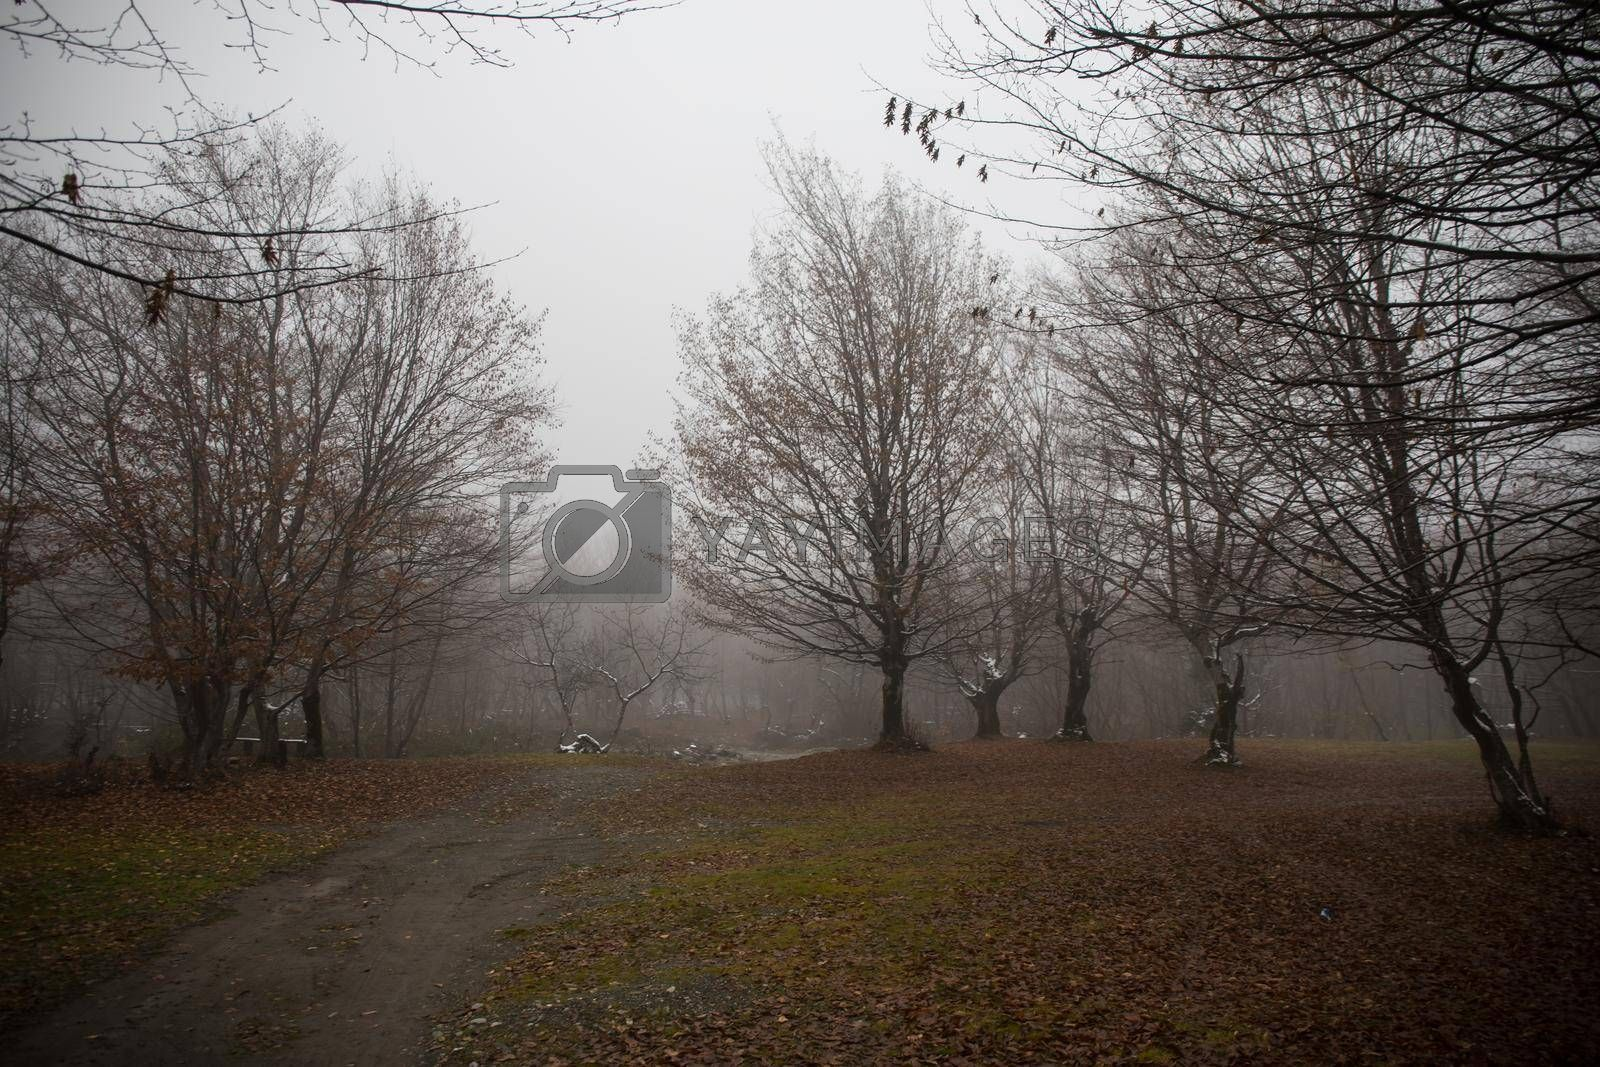 Royalty free image of Landscape with beautiful fog in forest on hill or Trail through a mysterious winter forest with autumn leaves on the ground. Road through a winter forest. Magical atmosphere. Azerbaijan nature by Zeferli